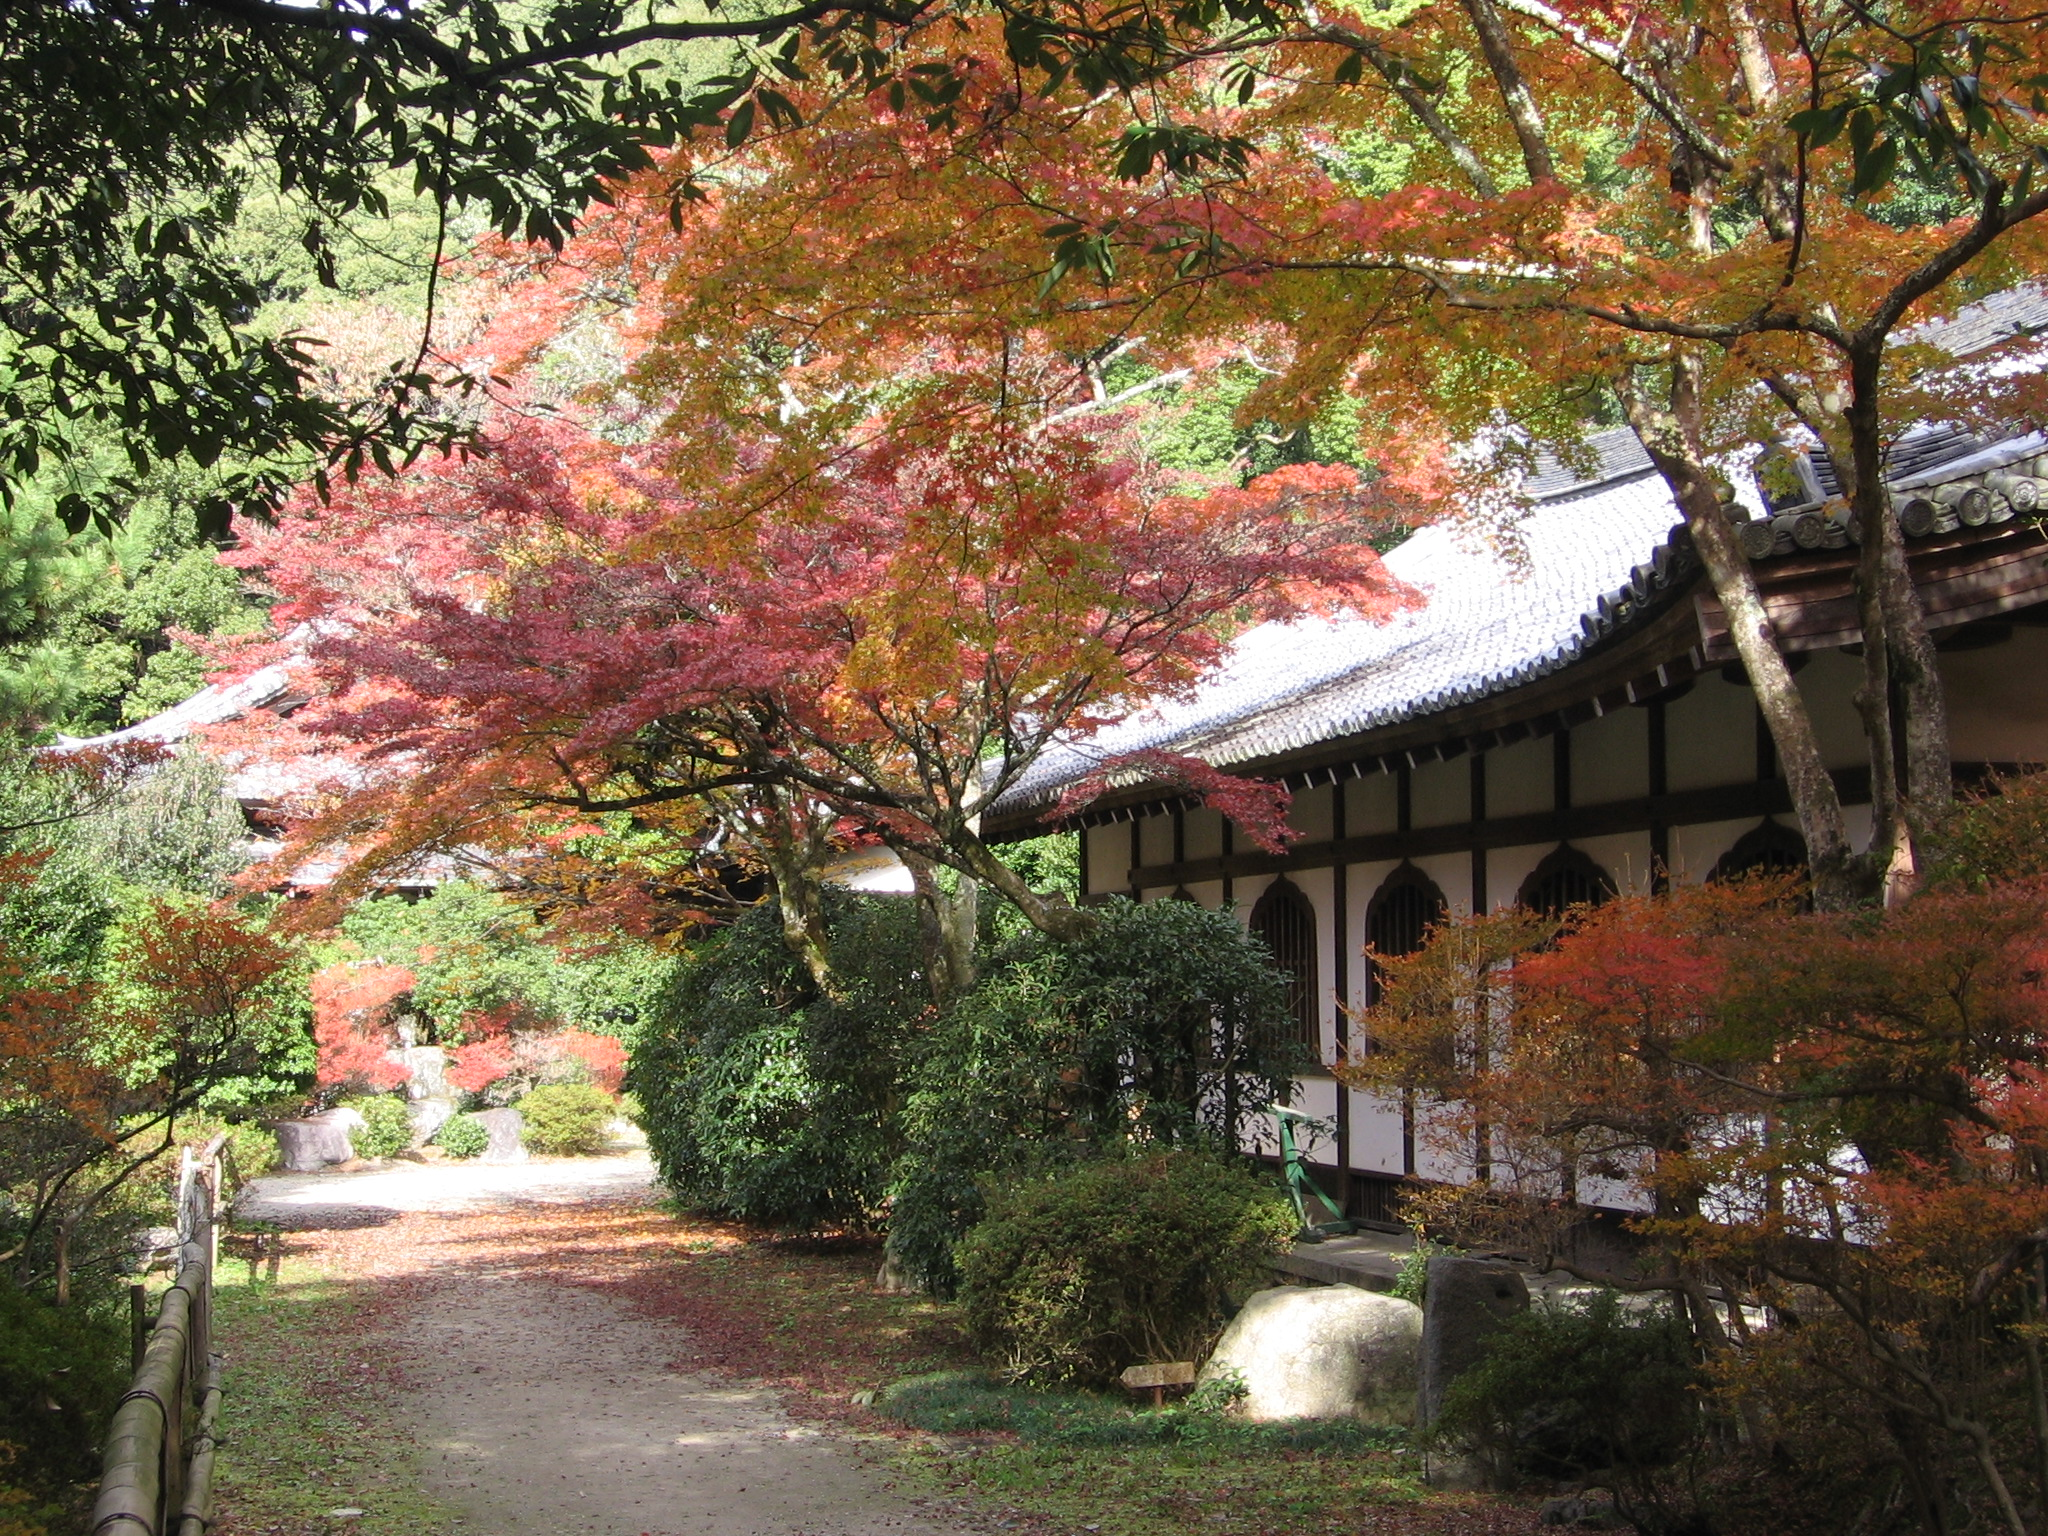 Japanese Garden Wallpapers: Japan Wallpapers And Images: Japanese Temple Scenery